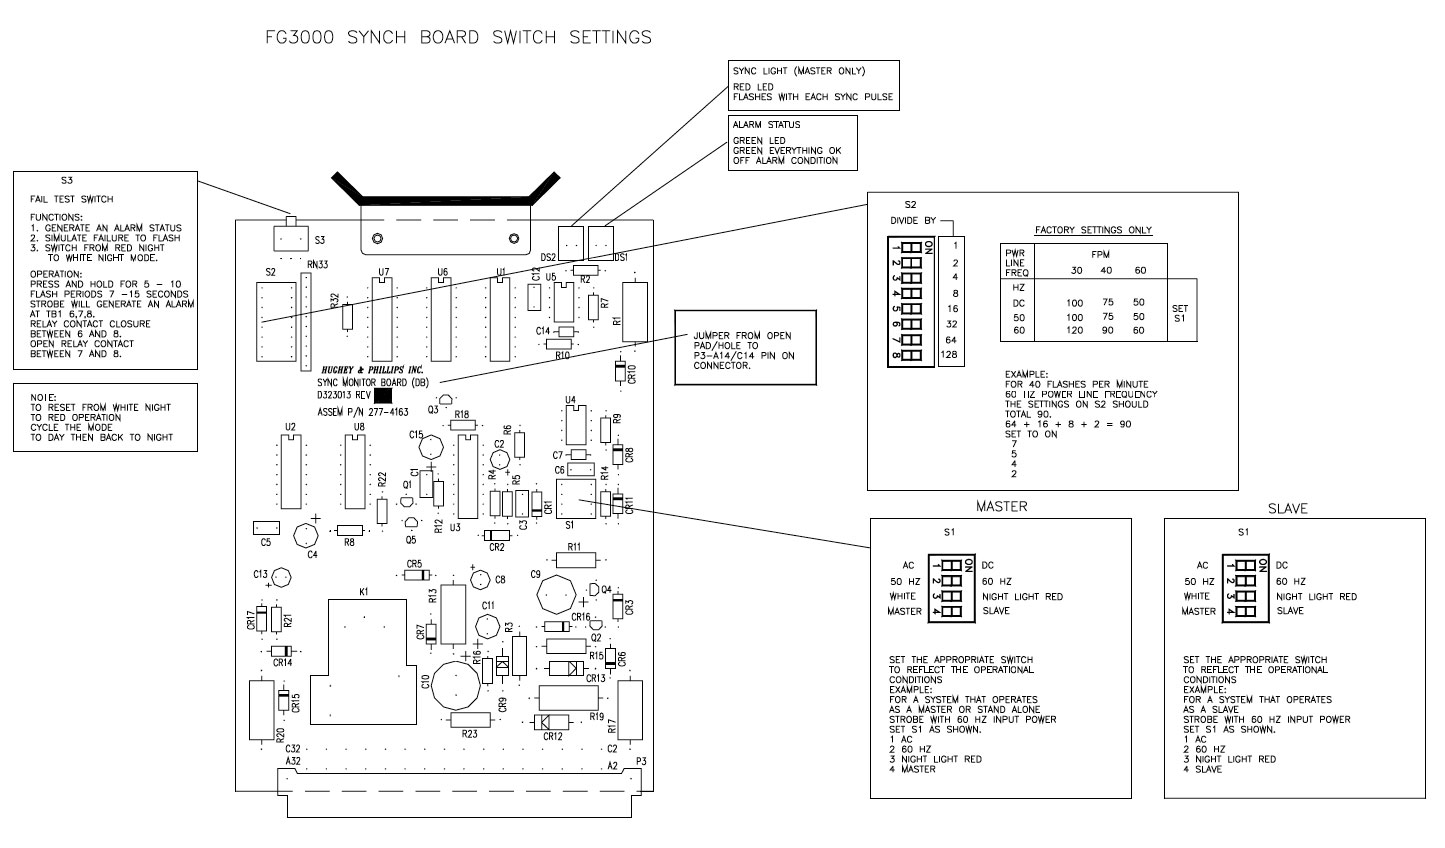 Troubleshooting Guide For Fg3000 Dual Medium Intensity Lighting Led 120 240 Wiring Diagram Figure 5 Sync Monitor Board Details